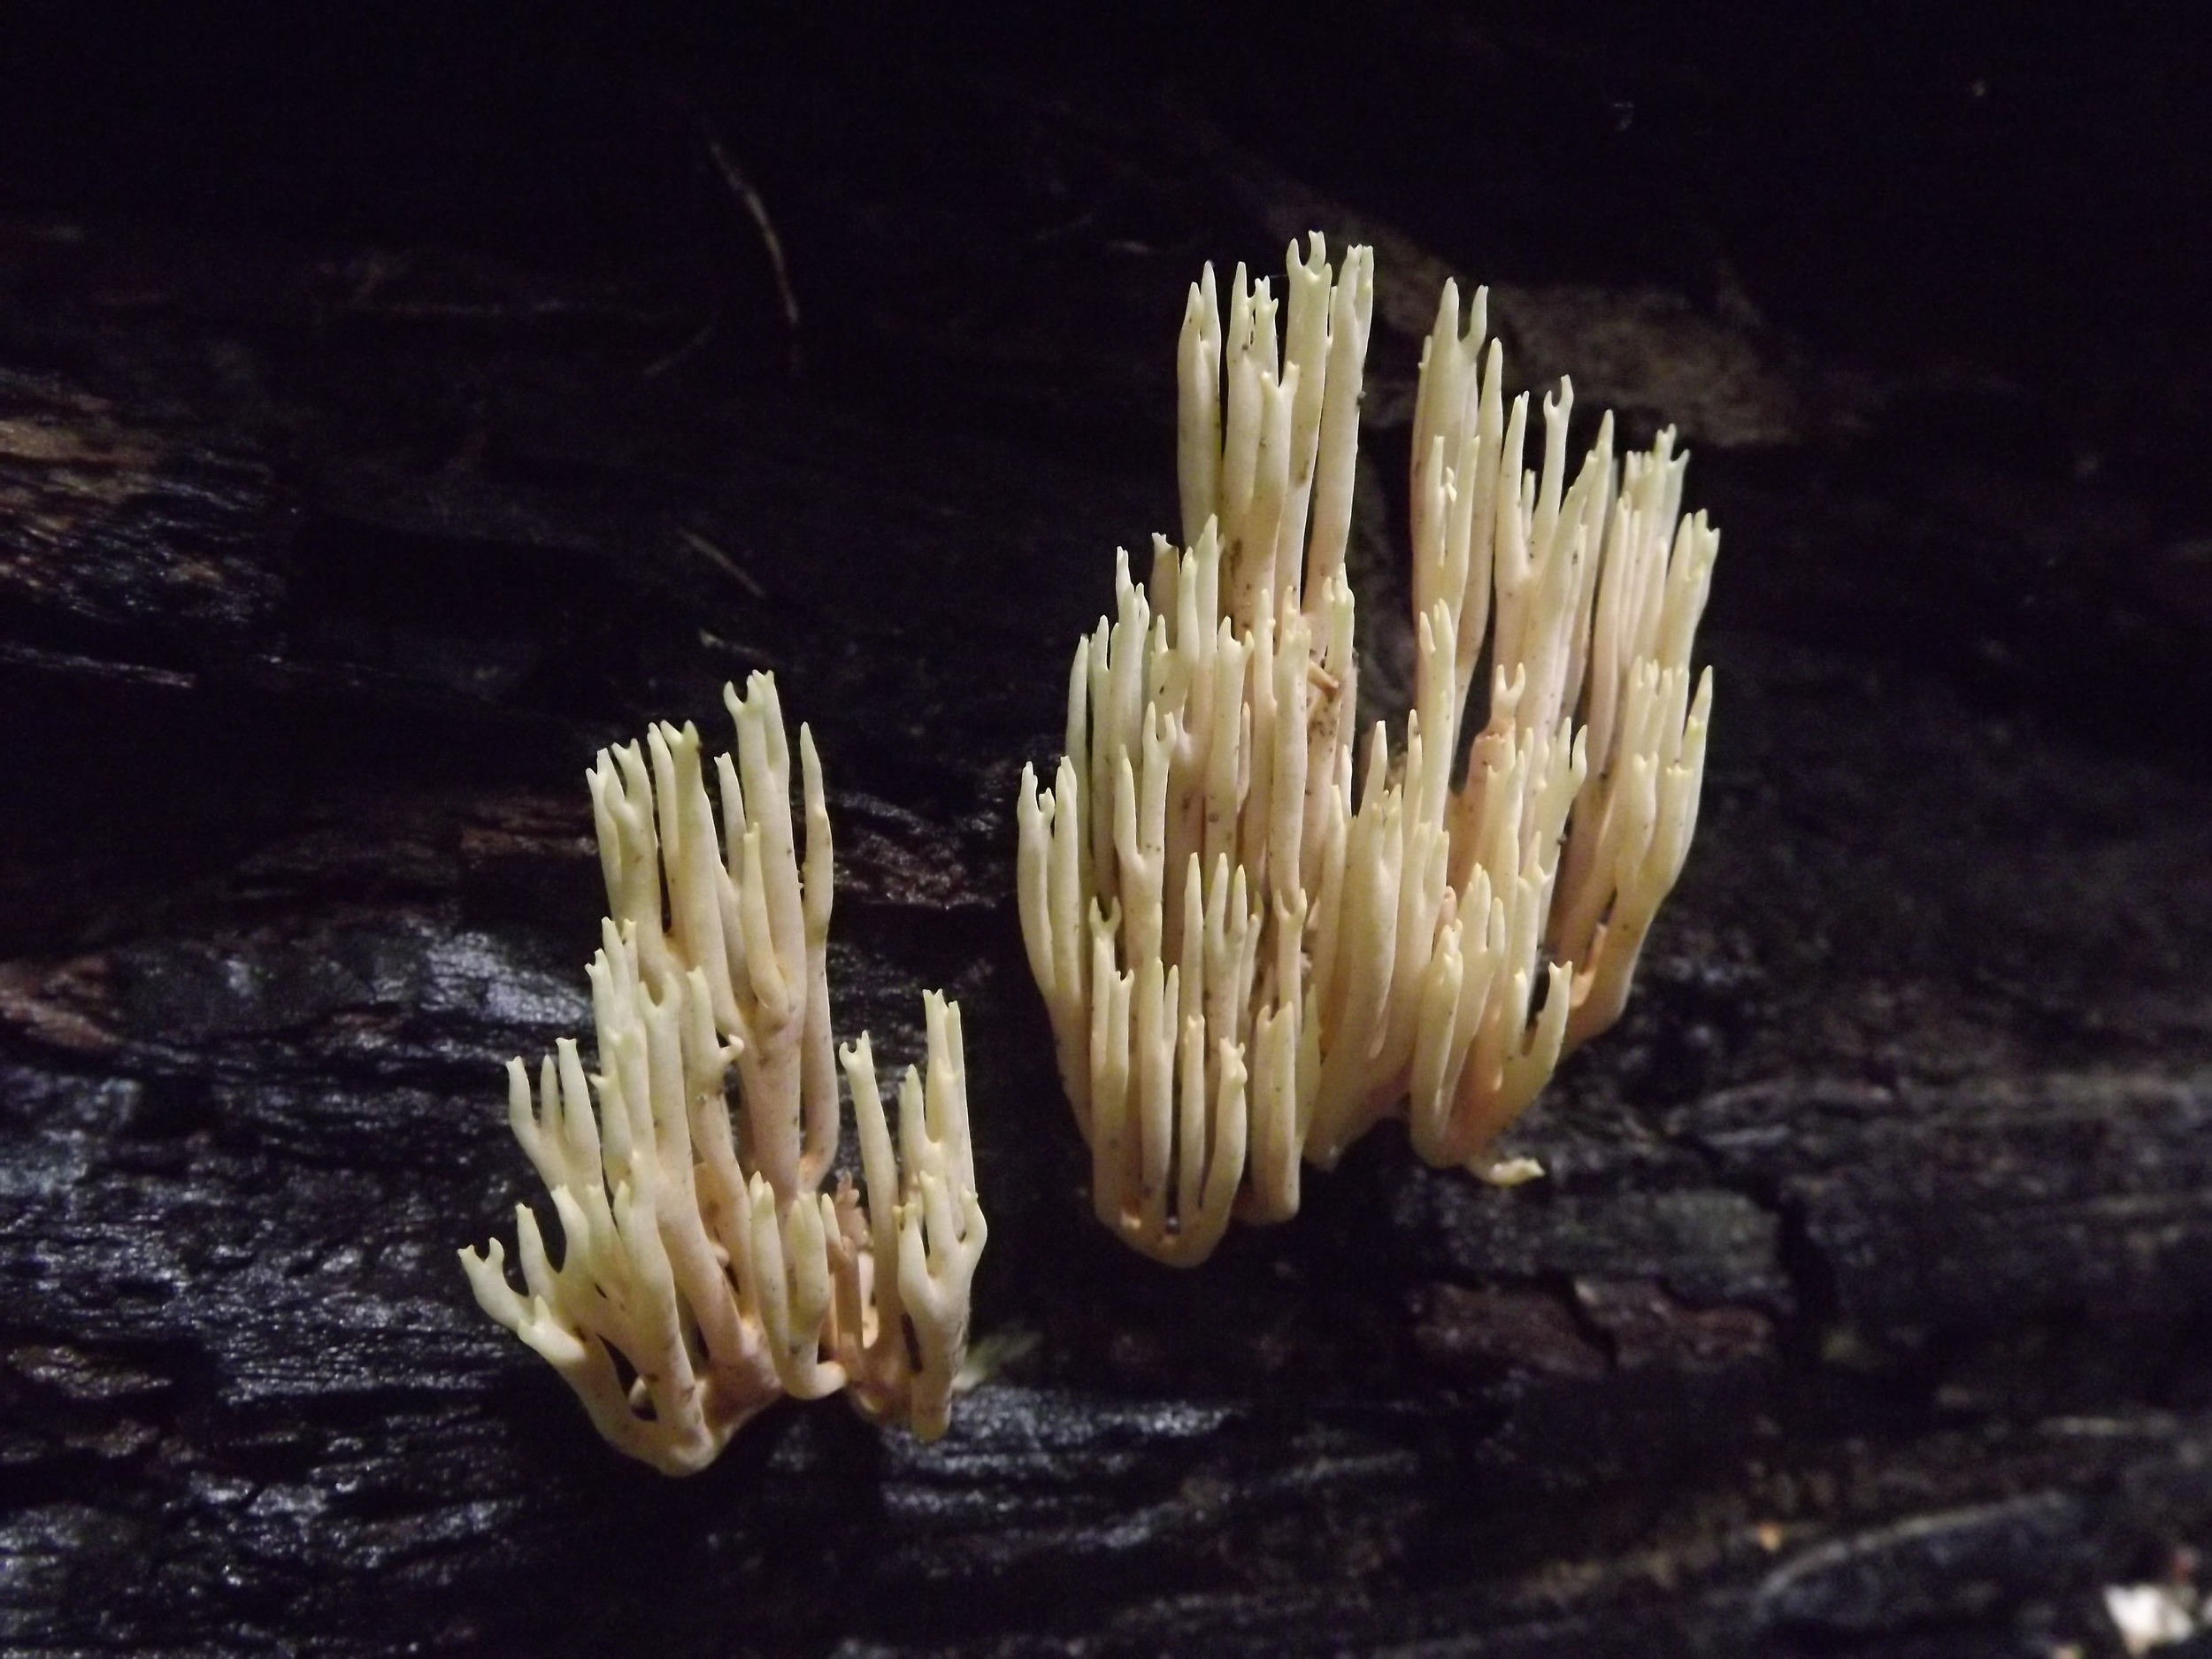 Crown Tipped Coral Fungus ( Artomyces pyxidatus ) - This is the first I've run into Crown Tipped Coral fungus this year and surprisingly I found this cluster with several other clusters nearby.. more than I've ever seen before at one time. So I can only assume it's due to the especially wet summer we've had.